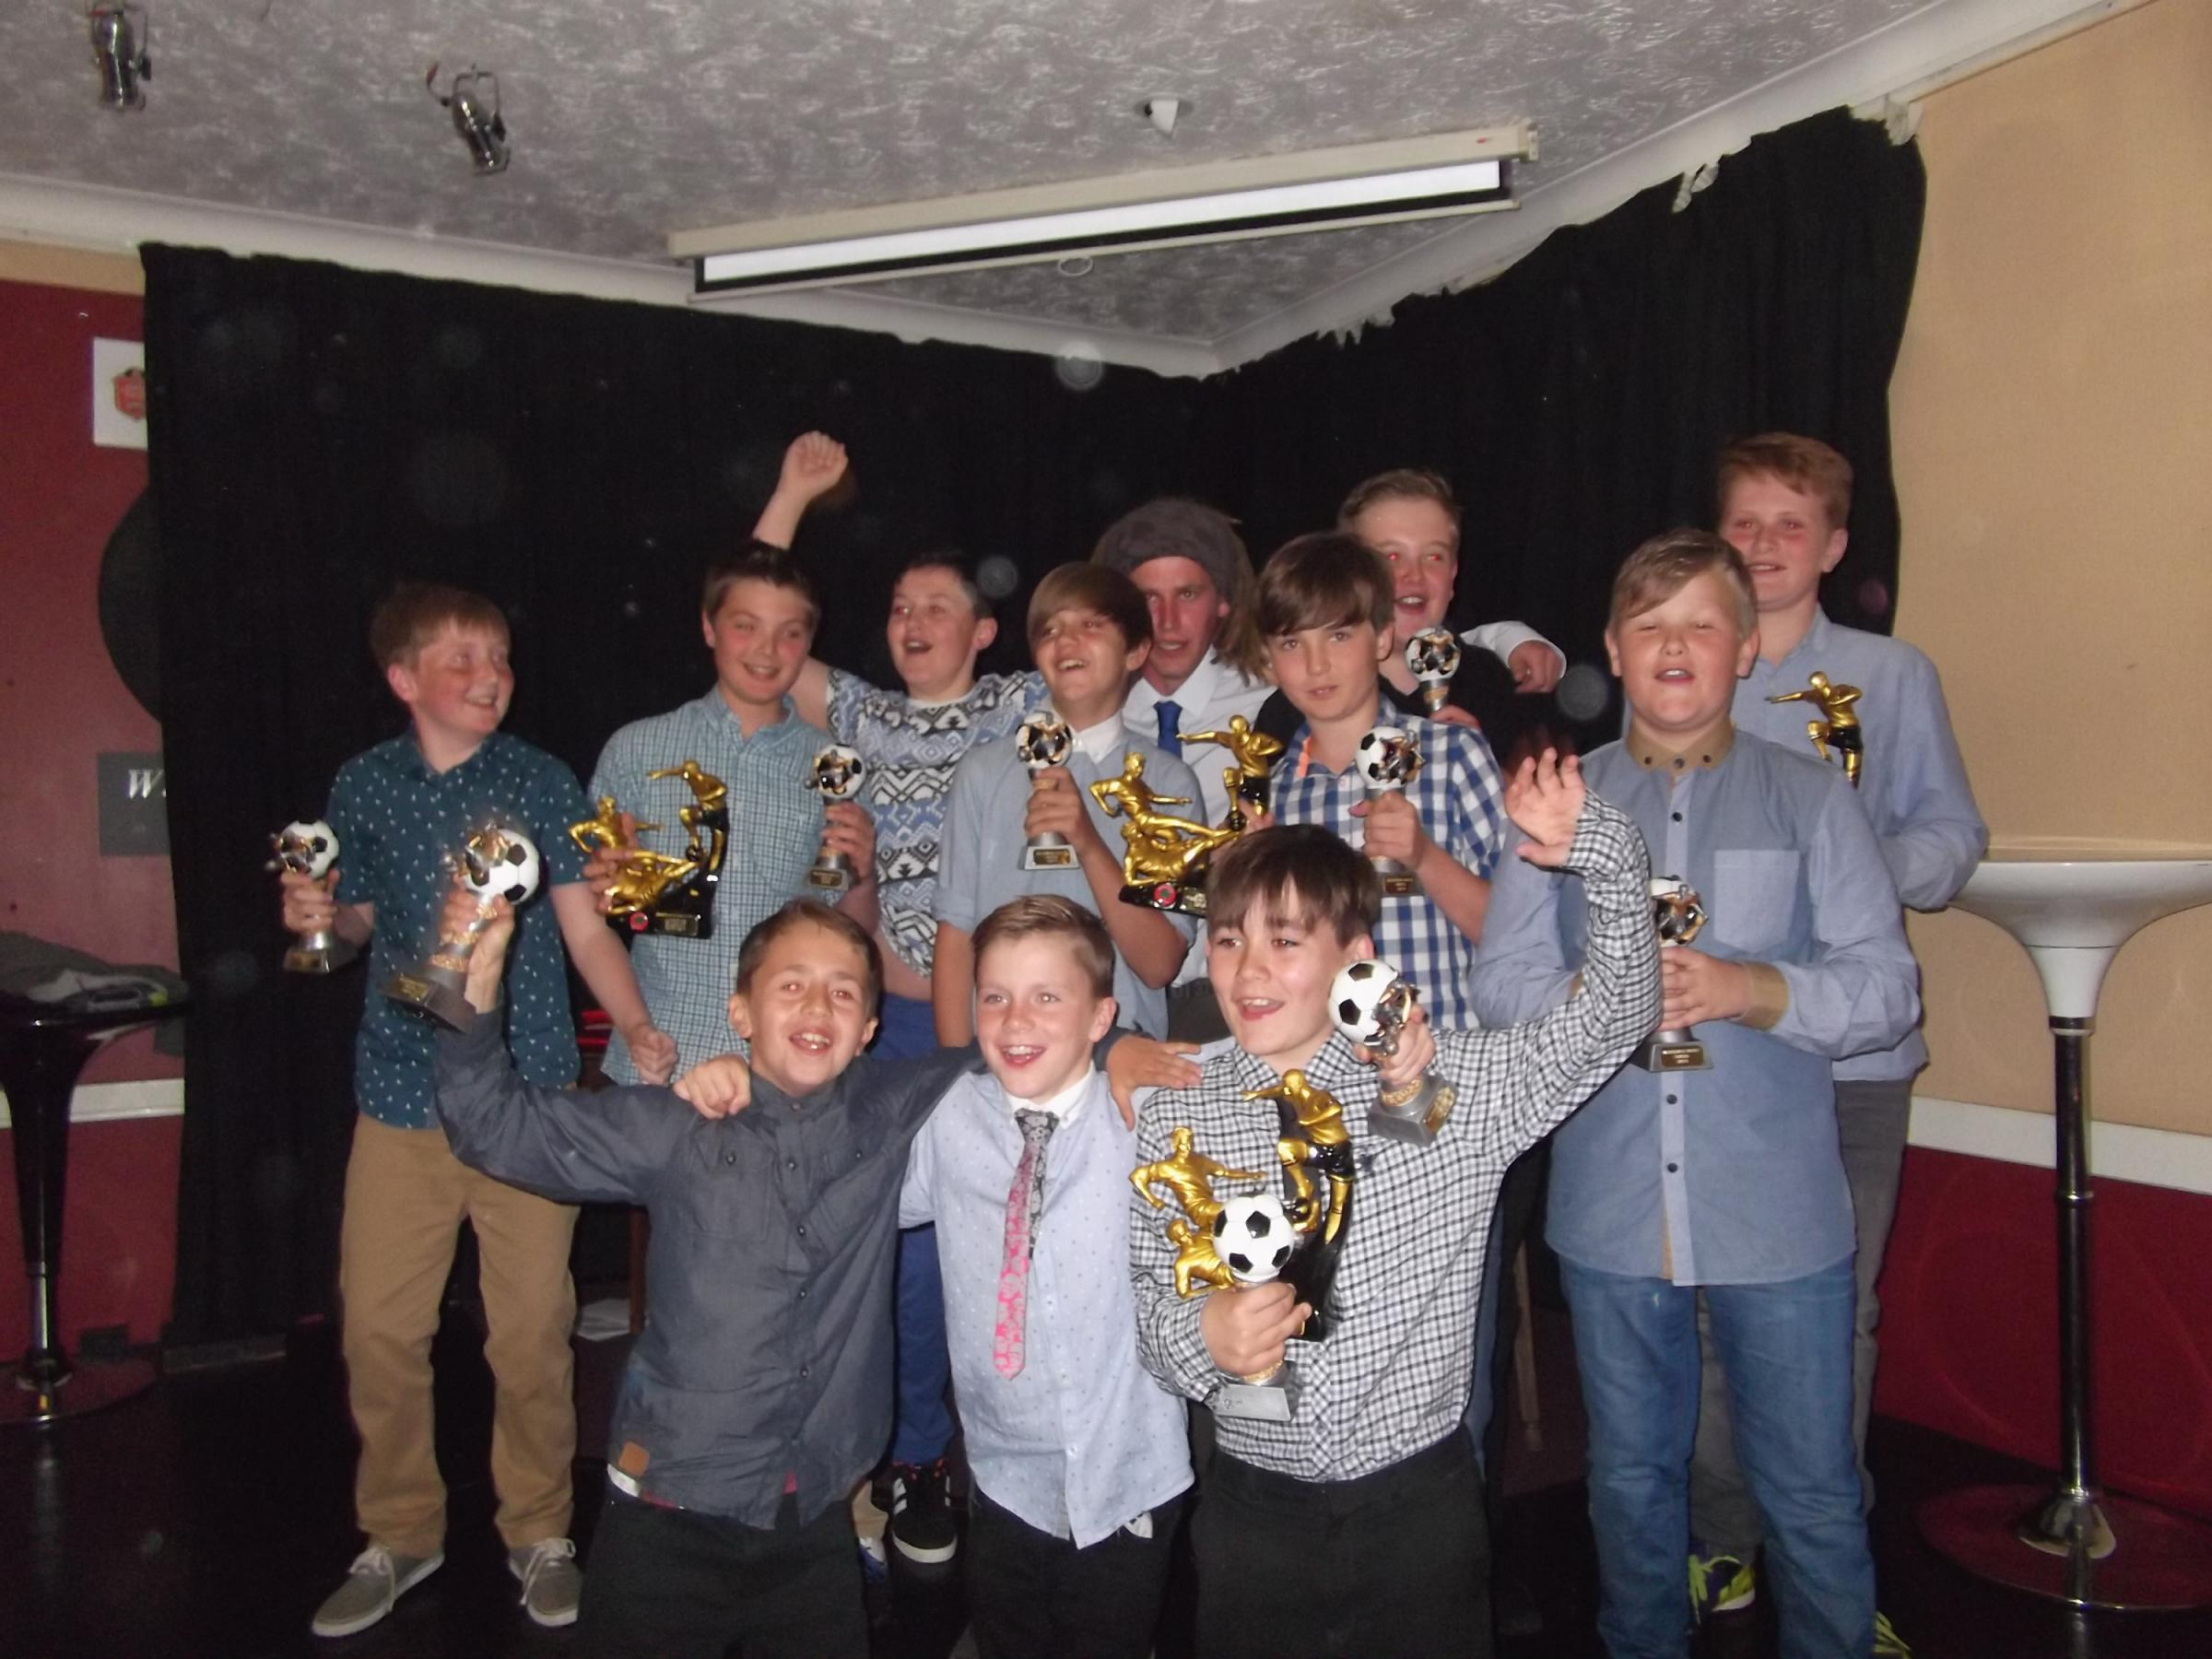 Wolversdene Youth's presentation night could be the last unless they can recruit more 12 year olds for August